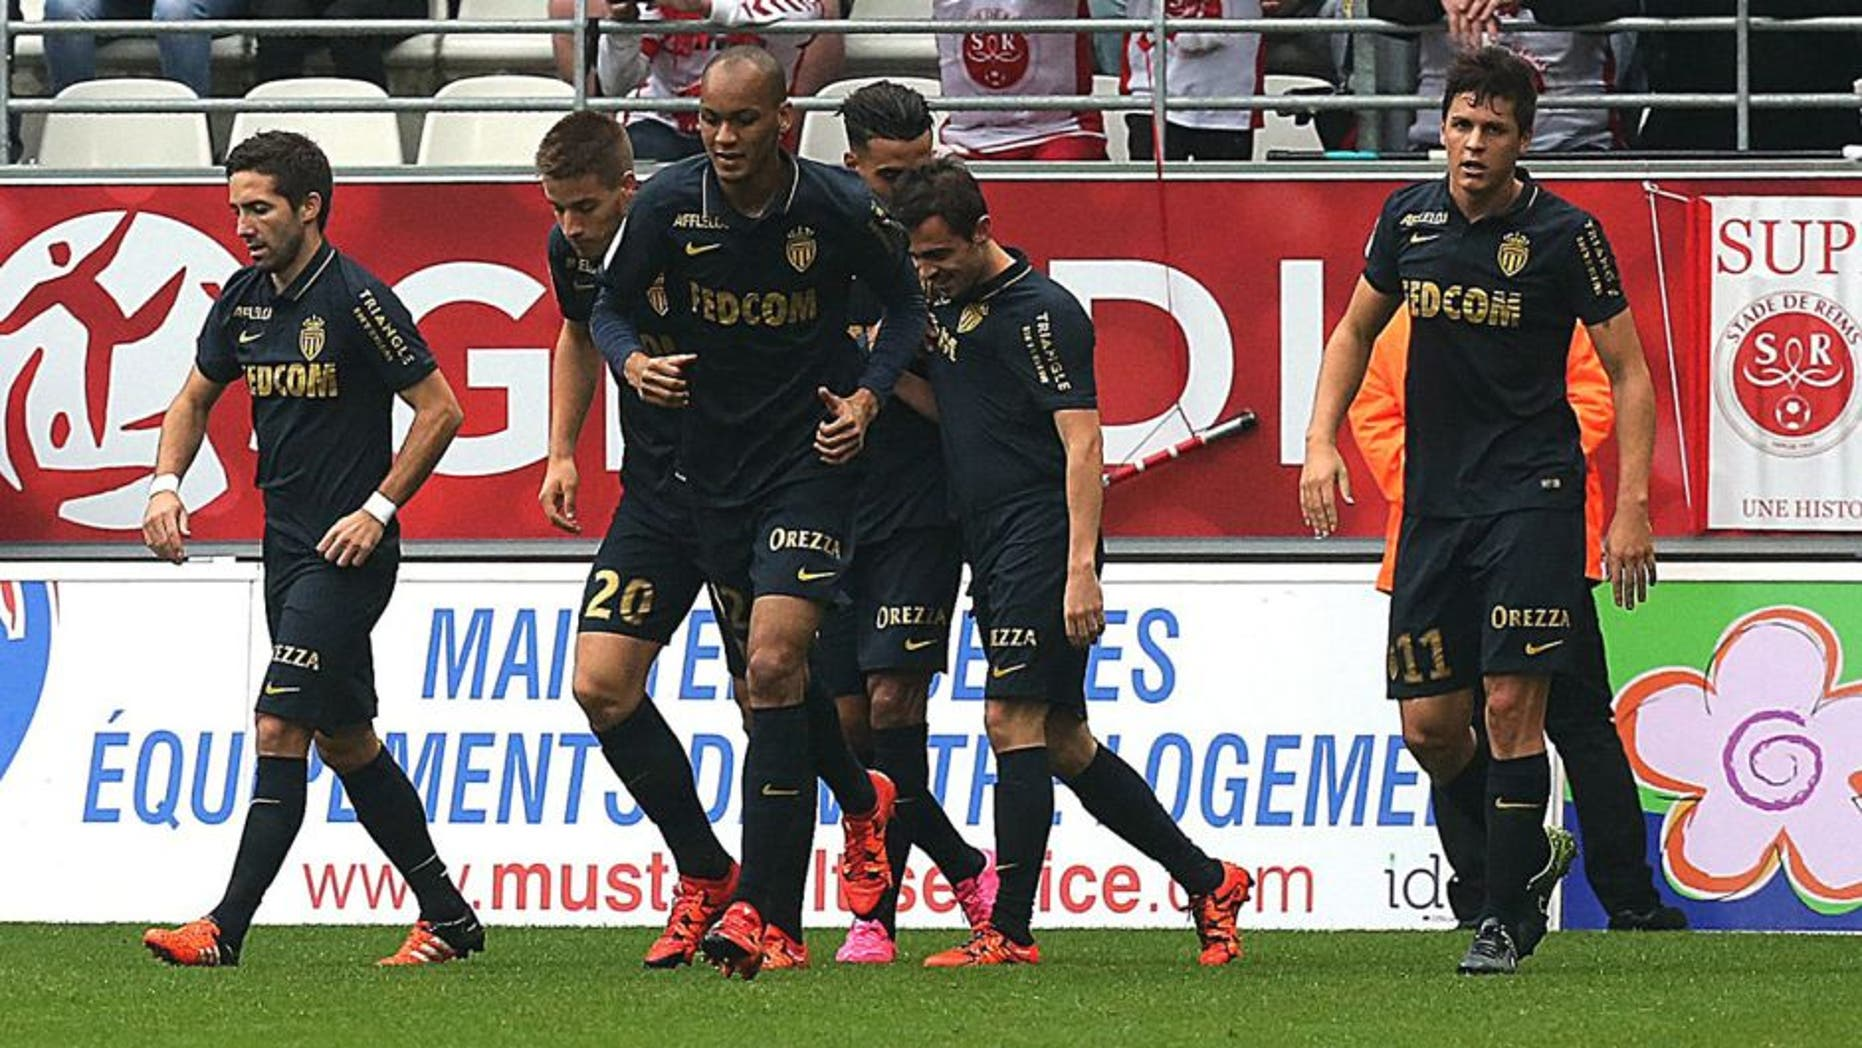 Monaco's Portuguese midfielder Silva Bernardo (2nd R) celebrates with teammates after scoring a goal during the French Ligue 1 football match between Reims and Monaco on October 25, 2015 at the Auguste Delaune Stadium in Reims. AFP PHOTO / FRANCOIS NASCIMBENI (Photo credit should read FRANCOIS NASCIMBENI/AFP/Getty Images)